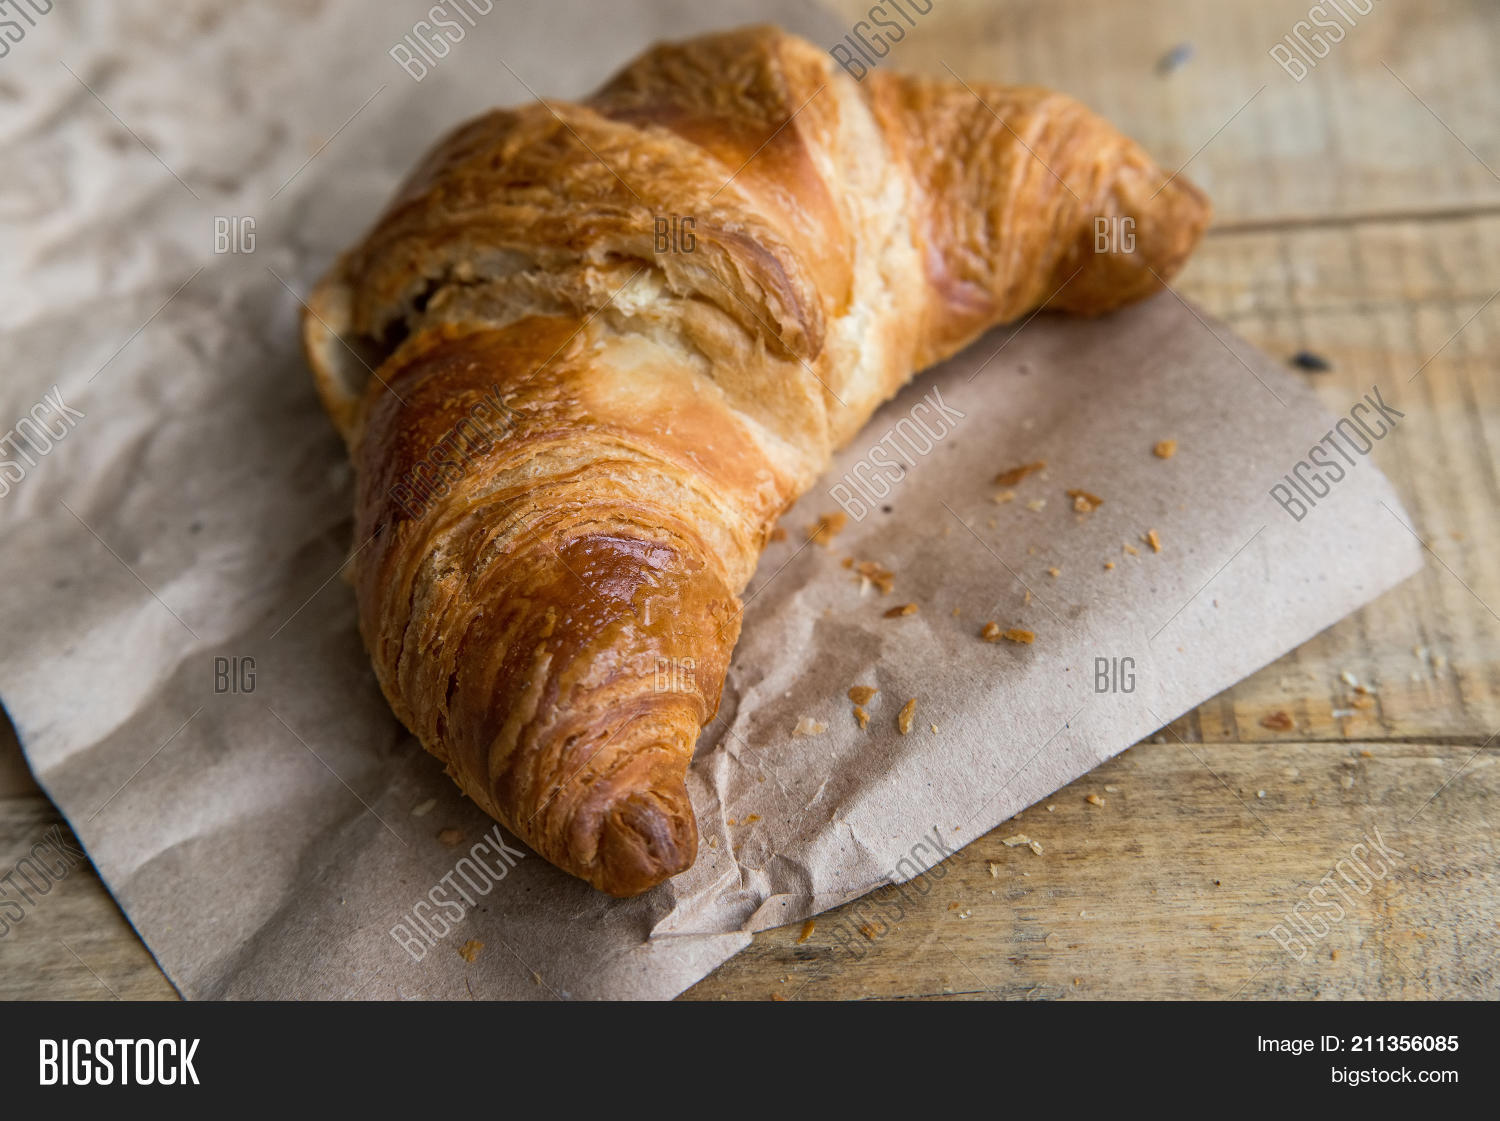 bake,baked,bakery,baking,bread,breakfast,bun,cooked,cookie,cooking,croissant,crust,cuisine,delicious,dessert,dough,drink,eat,filo,food,french,fresh,freshness,golden,homemade,horizontal,light,making,meal,morning,nobody,paper,pastry,preparation,preparing,preserves,puff,ready,roll,series,sheet,snack,sunny,sweet,tasty,traditionally,white